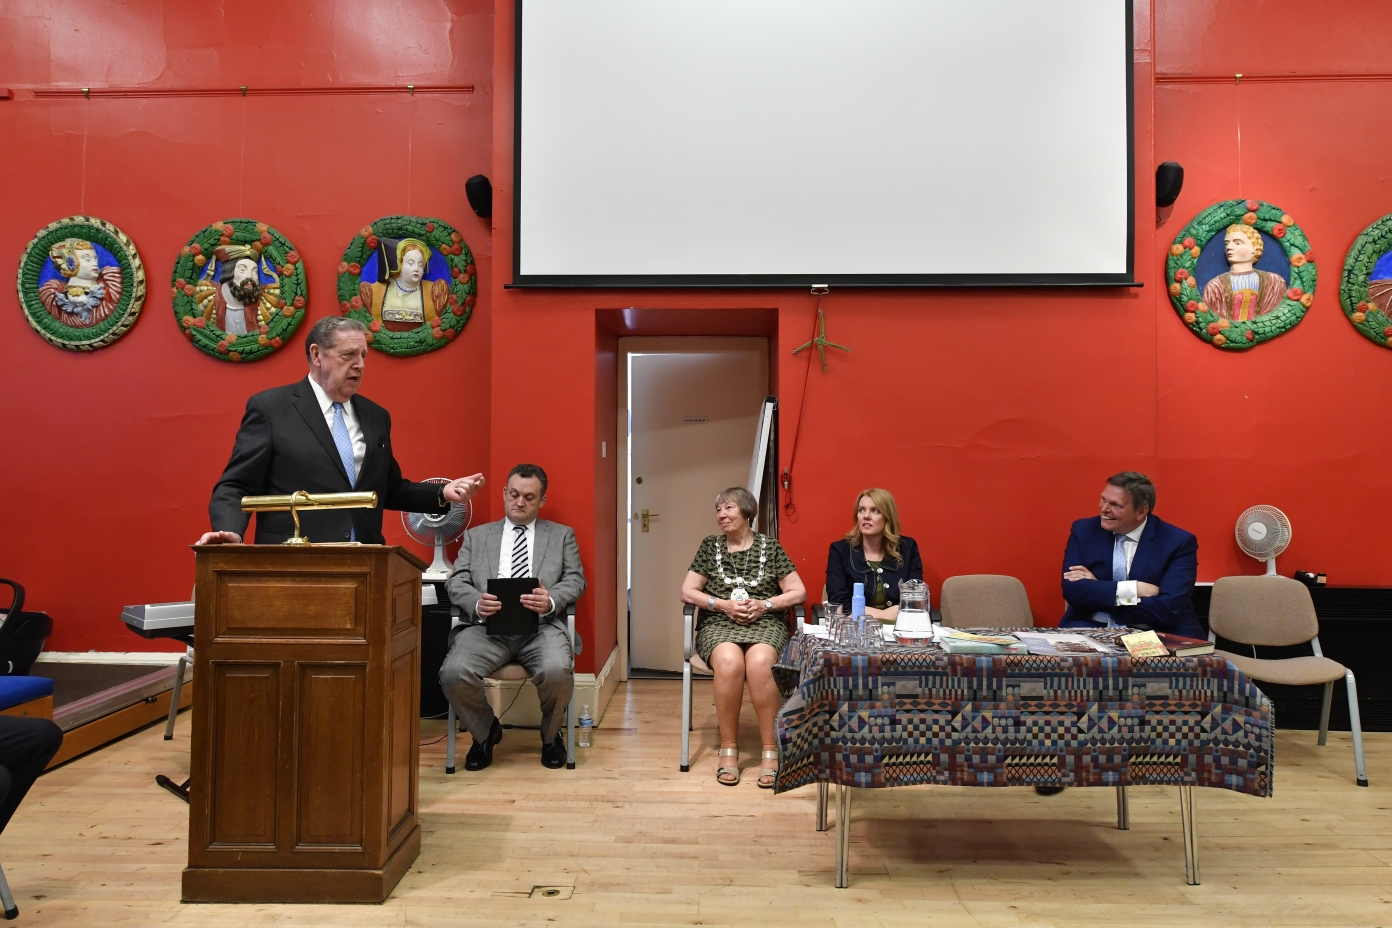 Elder Holland addresses guests at the Stirling Smith Art Gallery and Museum in Stirling, Scotland, on July 5, 2018.